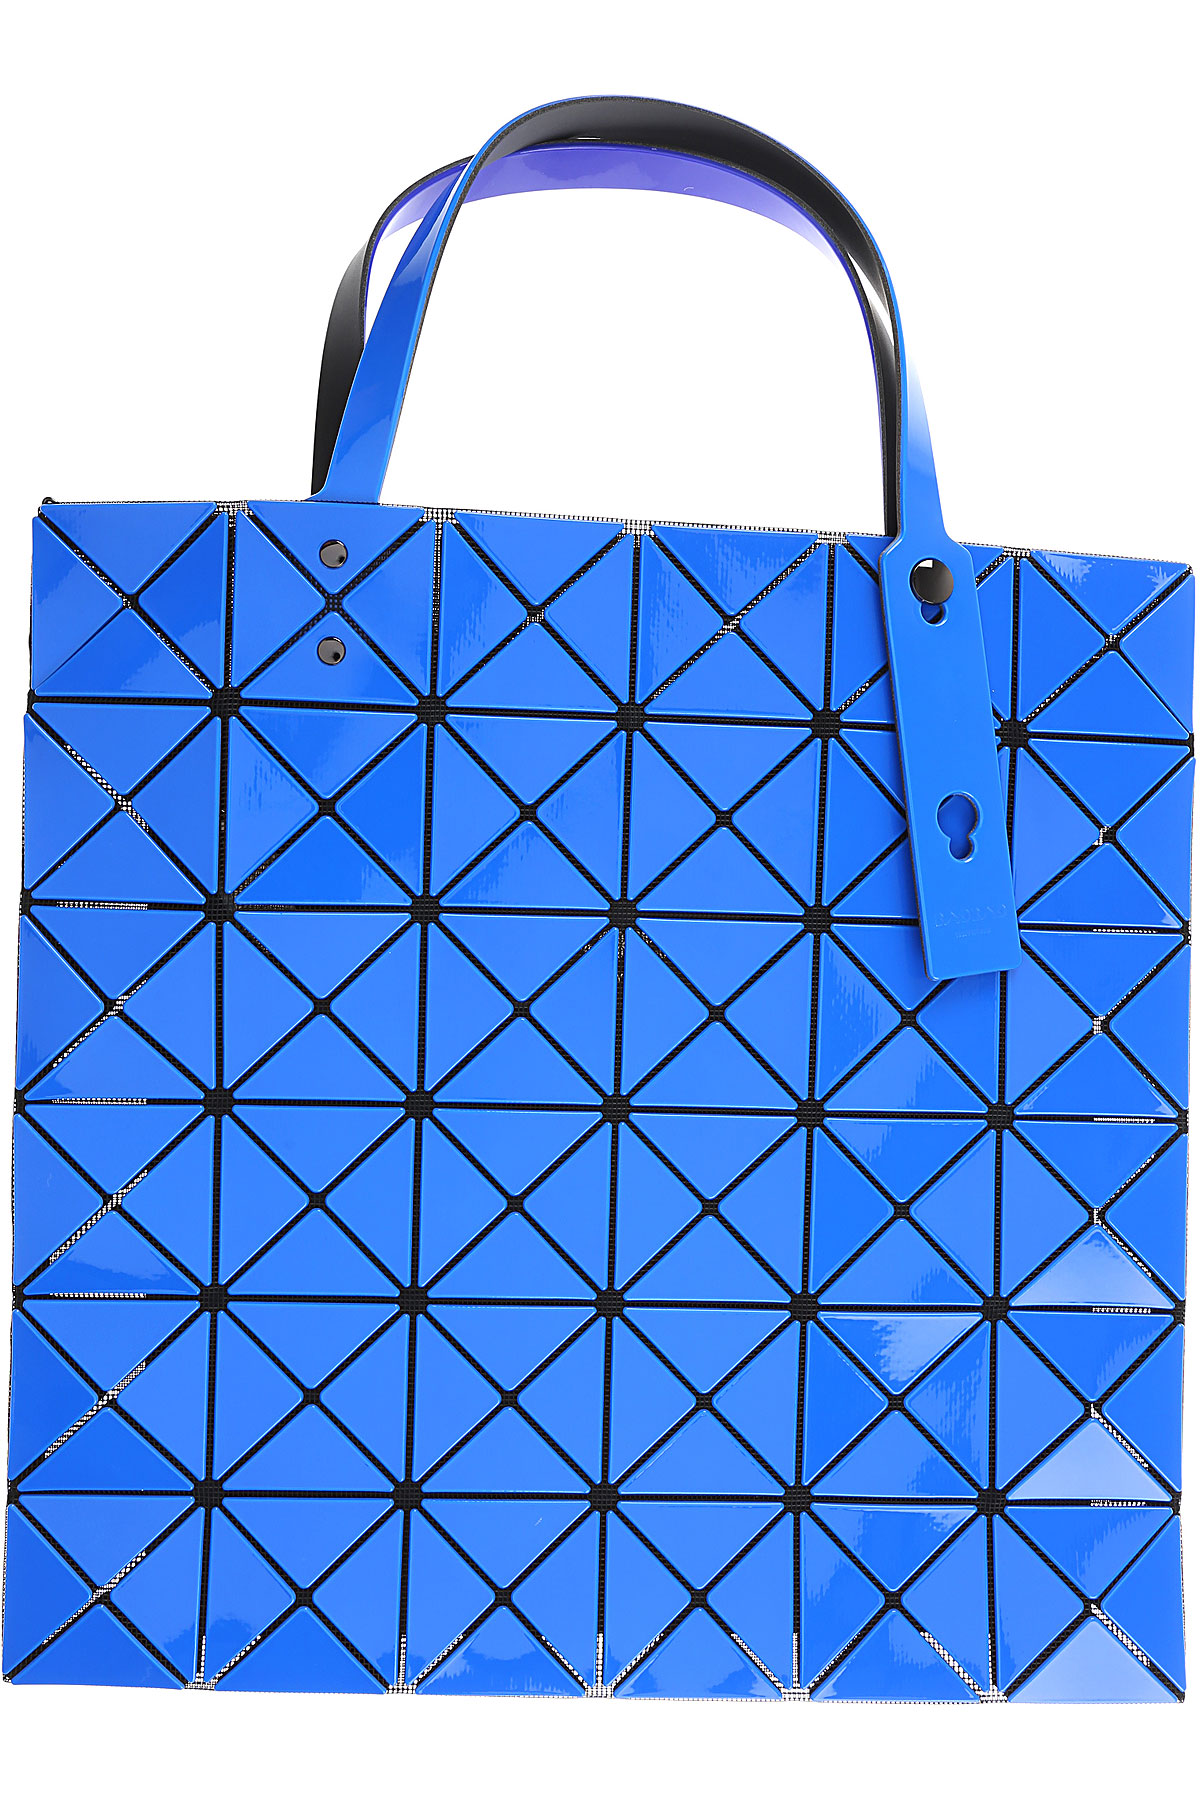 Image of Issey Miyake Shoulder Bag for Women, Bao Bao, Electric Blue, polyester, 2017